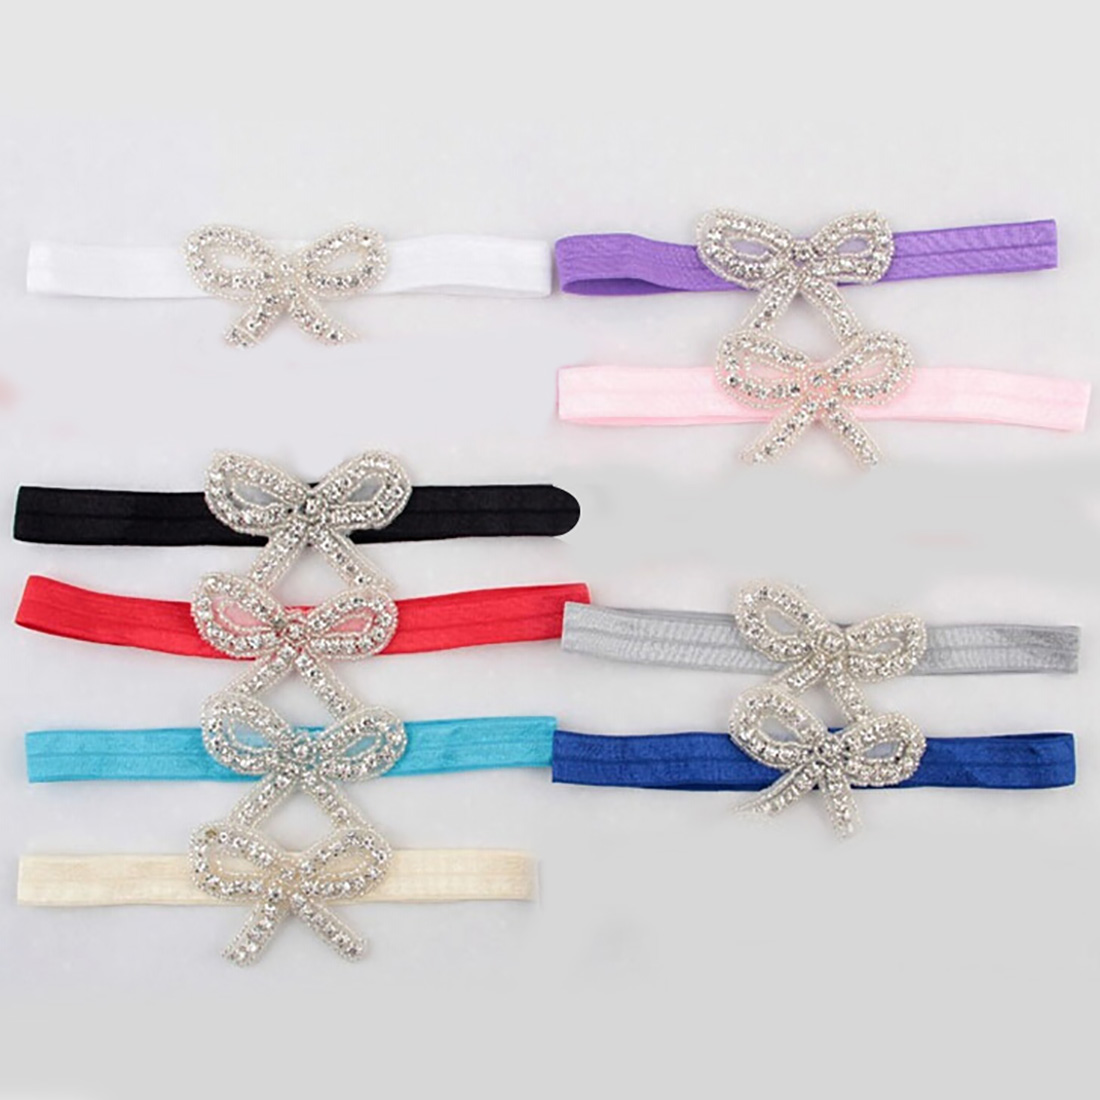 6 Crystal Pearl Photo Picture Frame Diamond Bowknot: New Girls Crystal Bowknot Headbands Hair Band Simple Soft